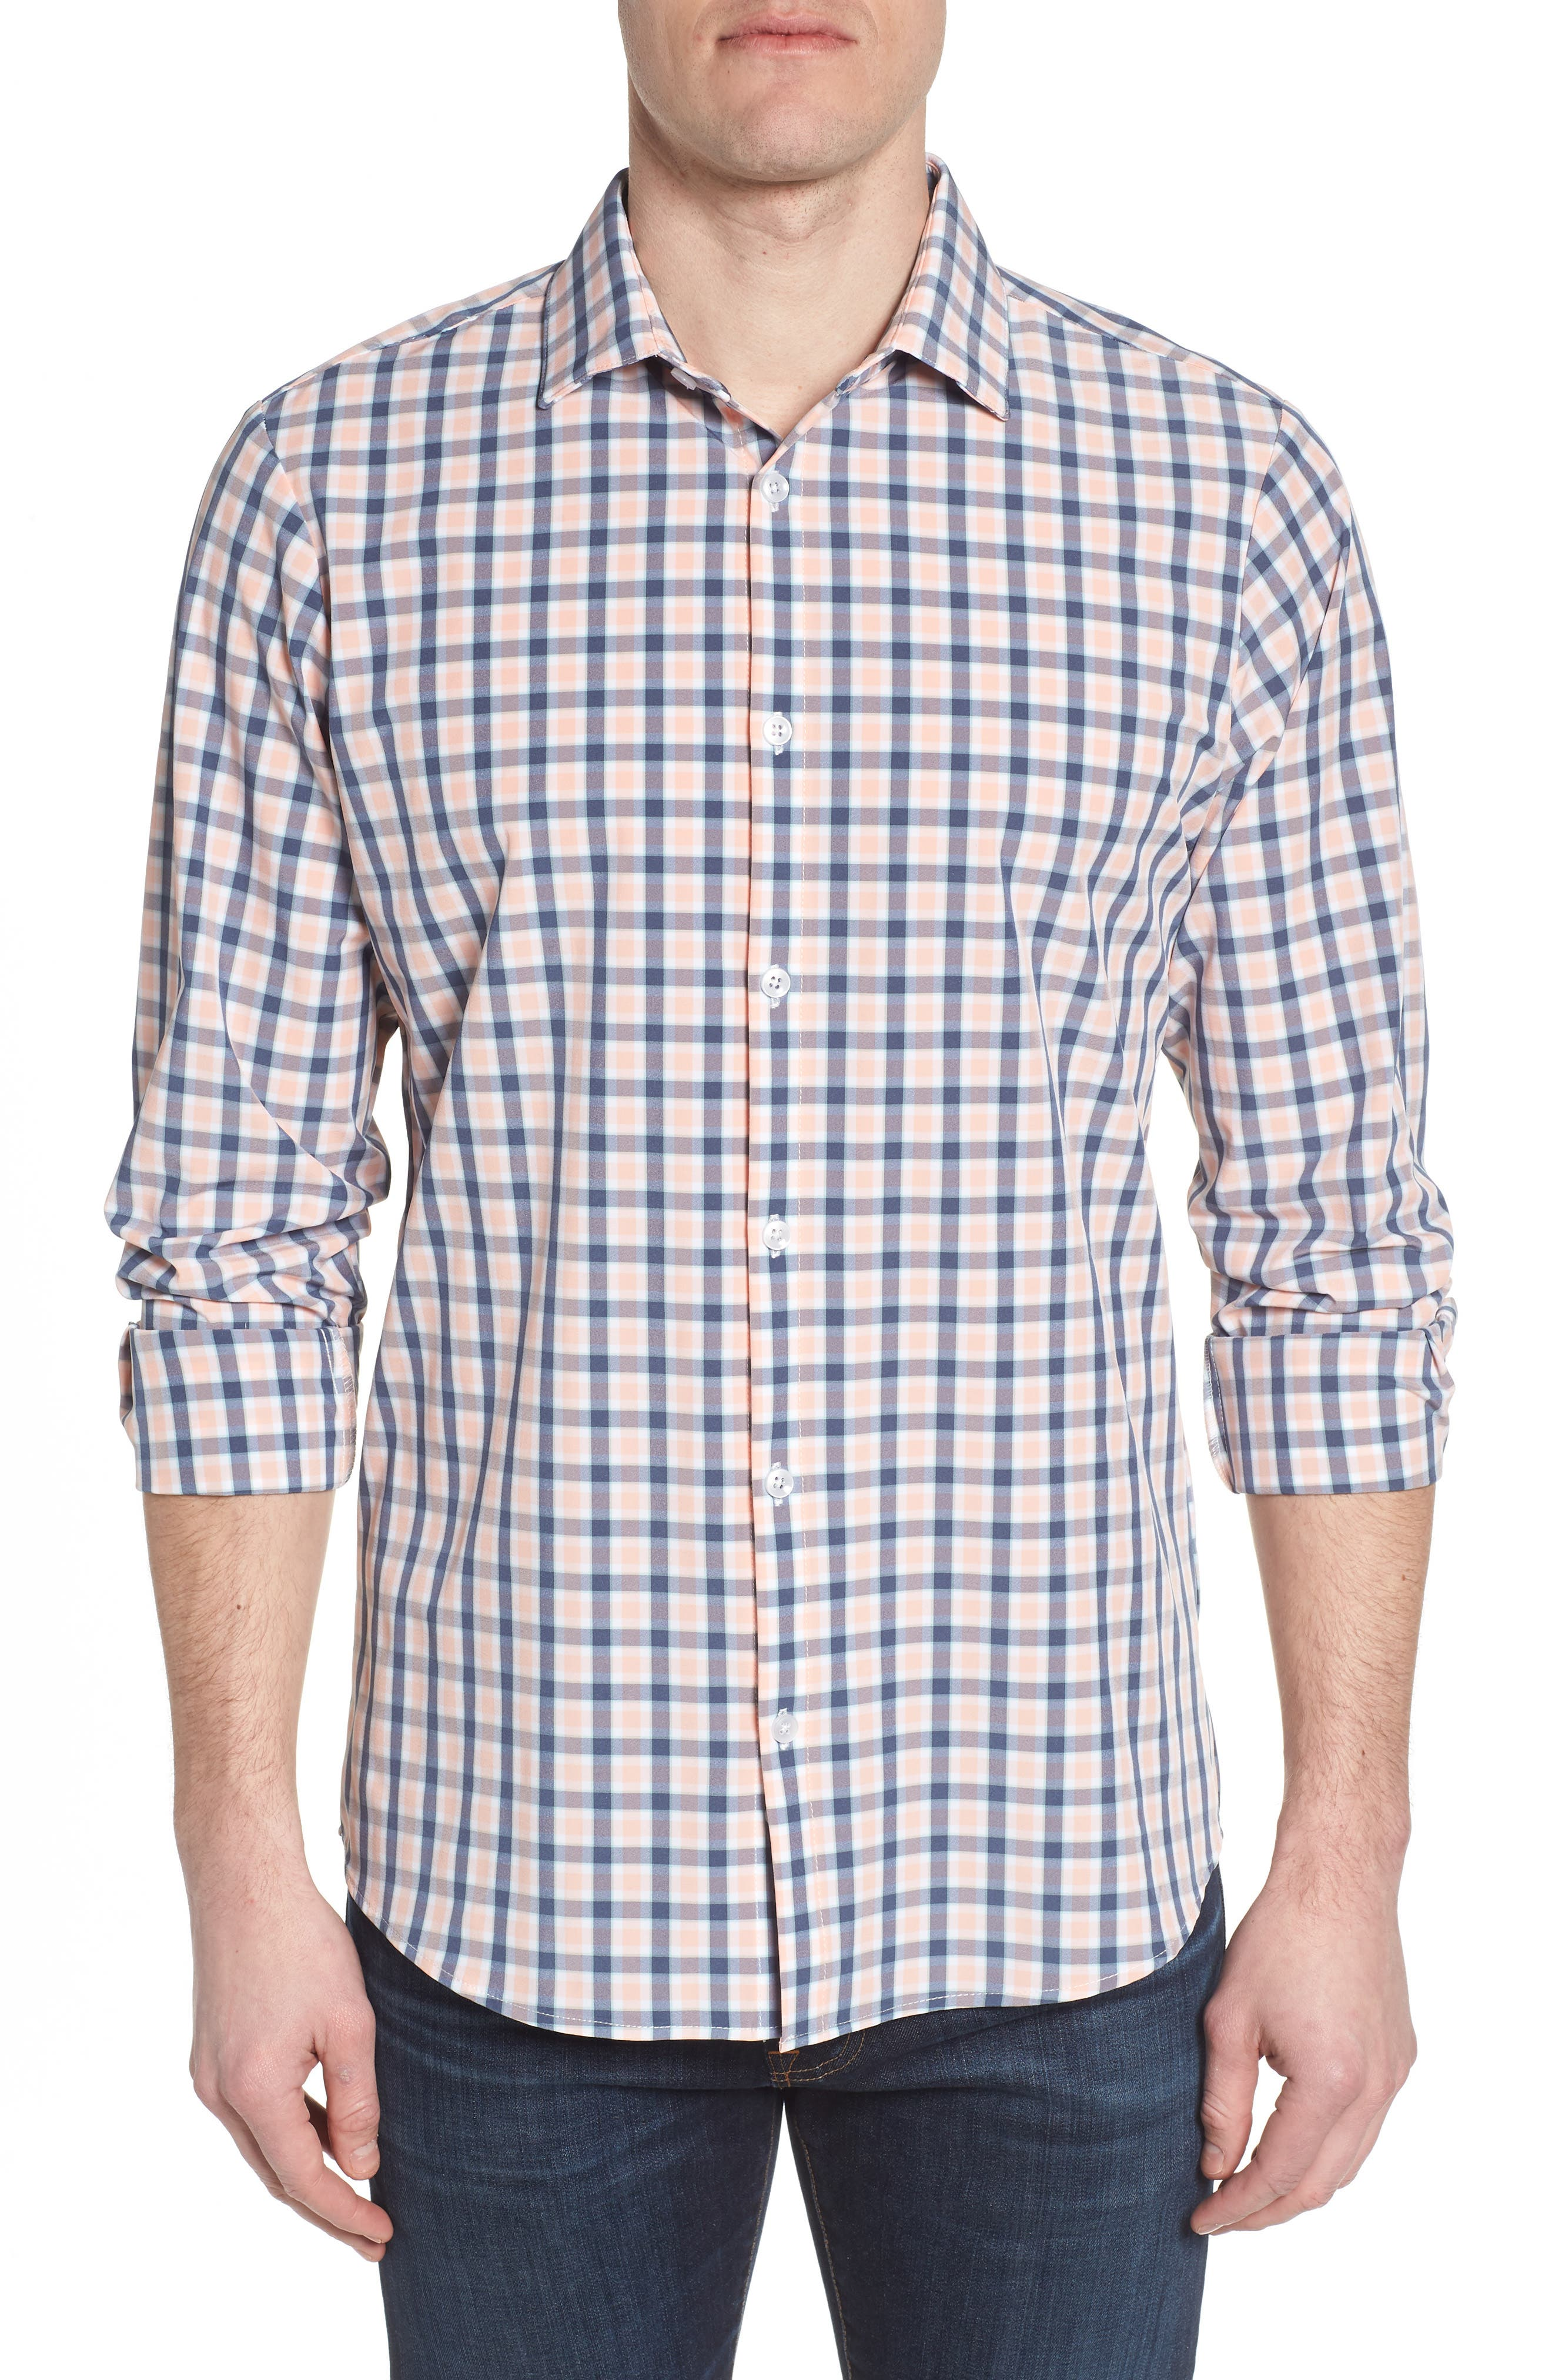 Brooks Check Performance Sport Shirt,                         Main,                         color,